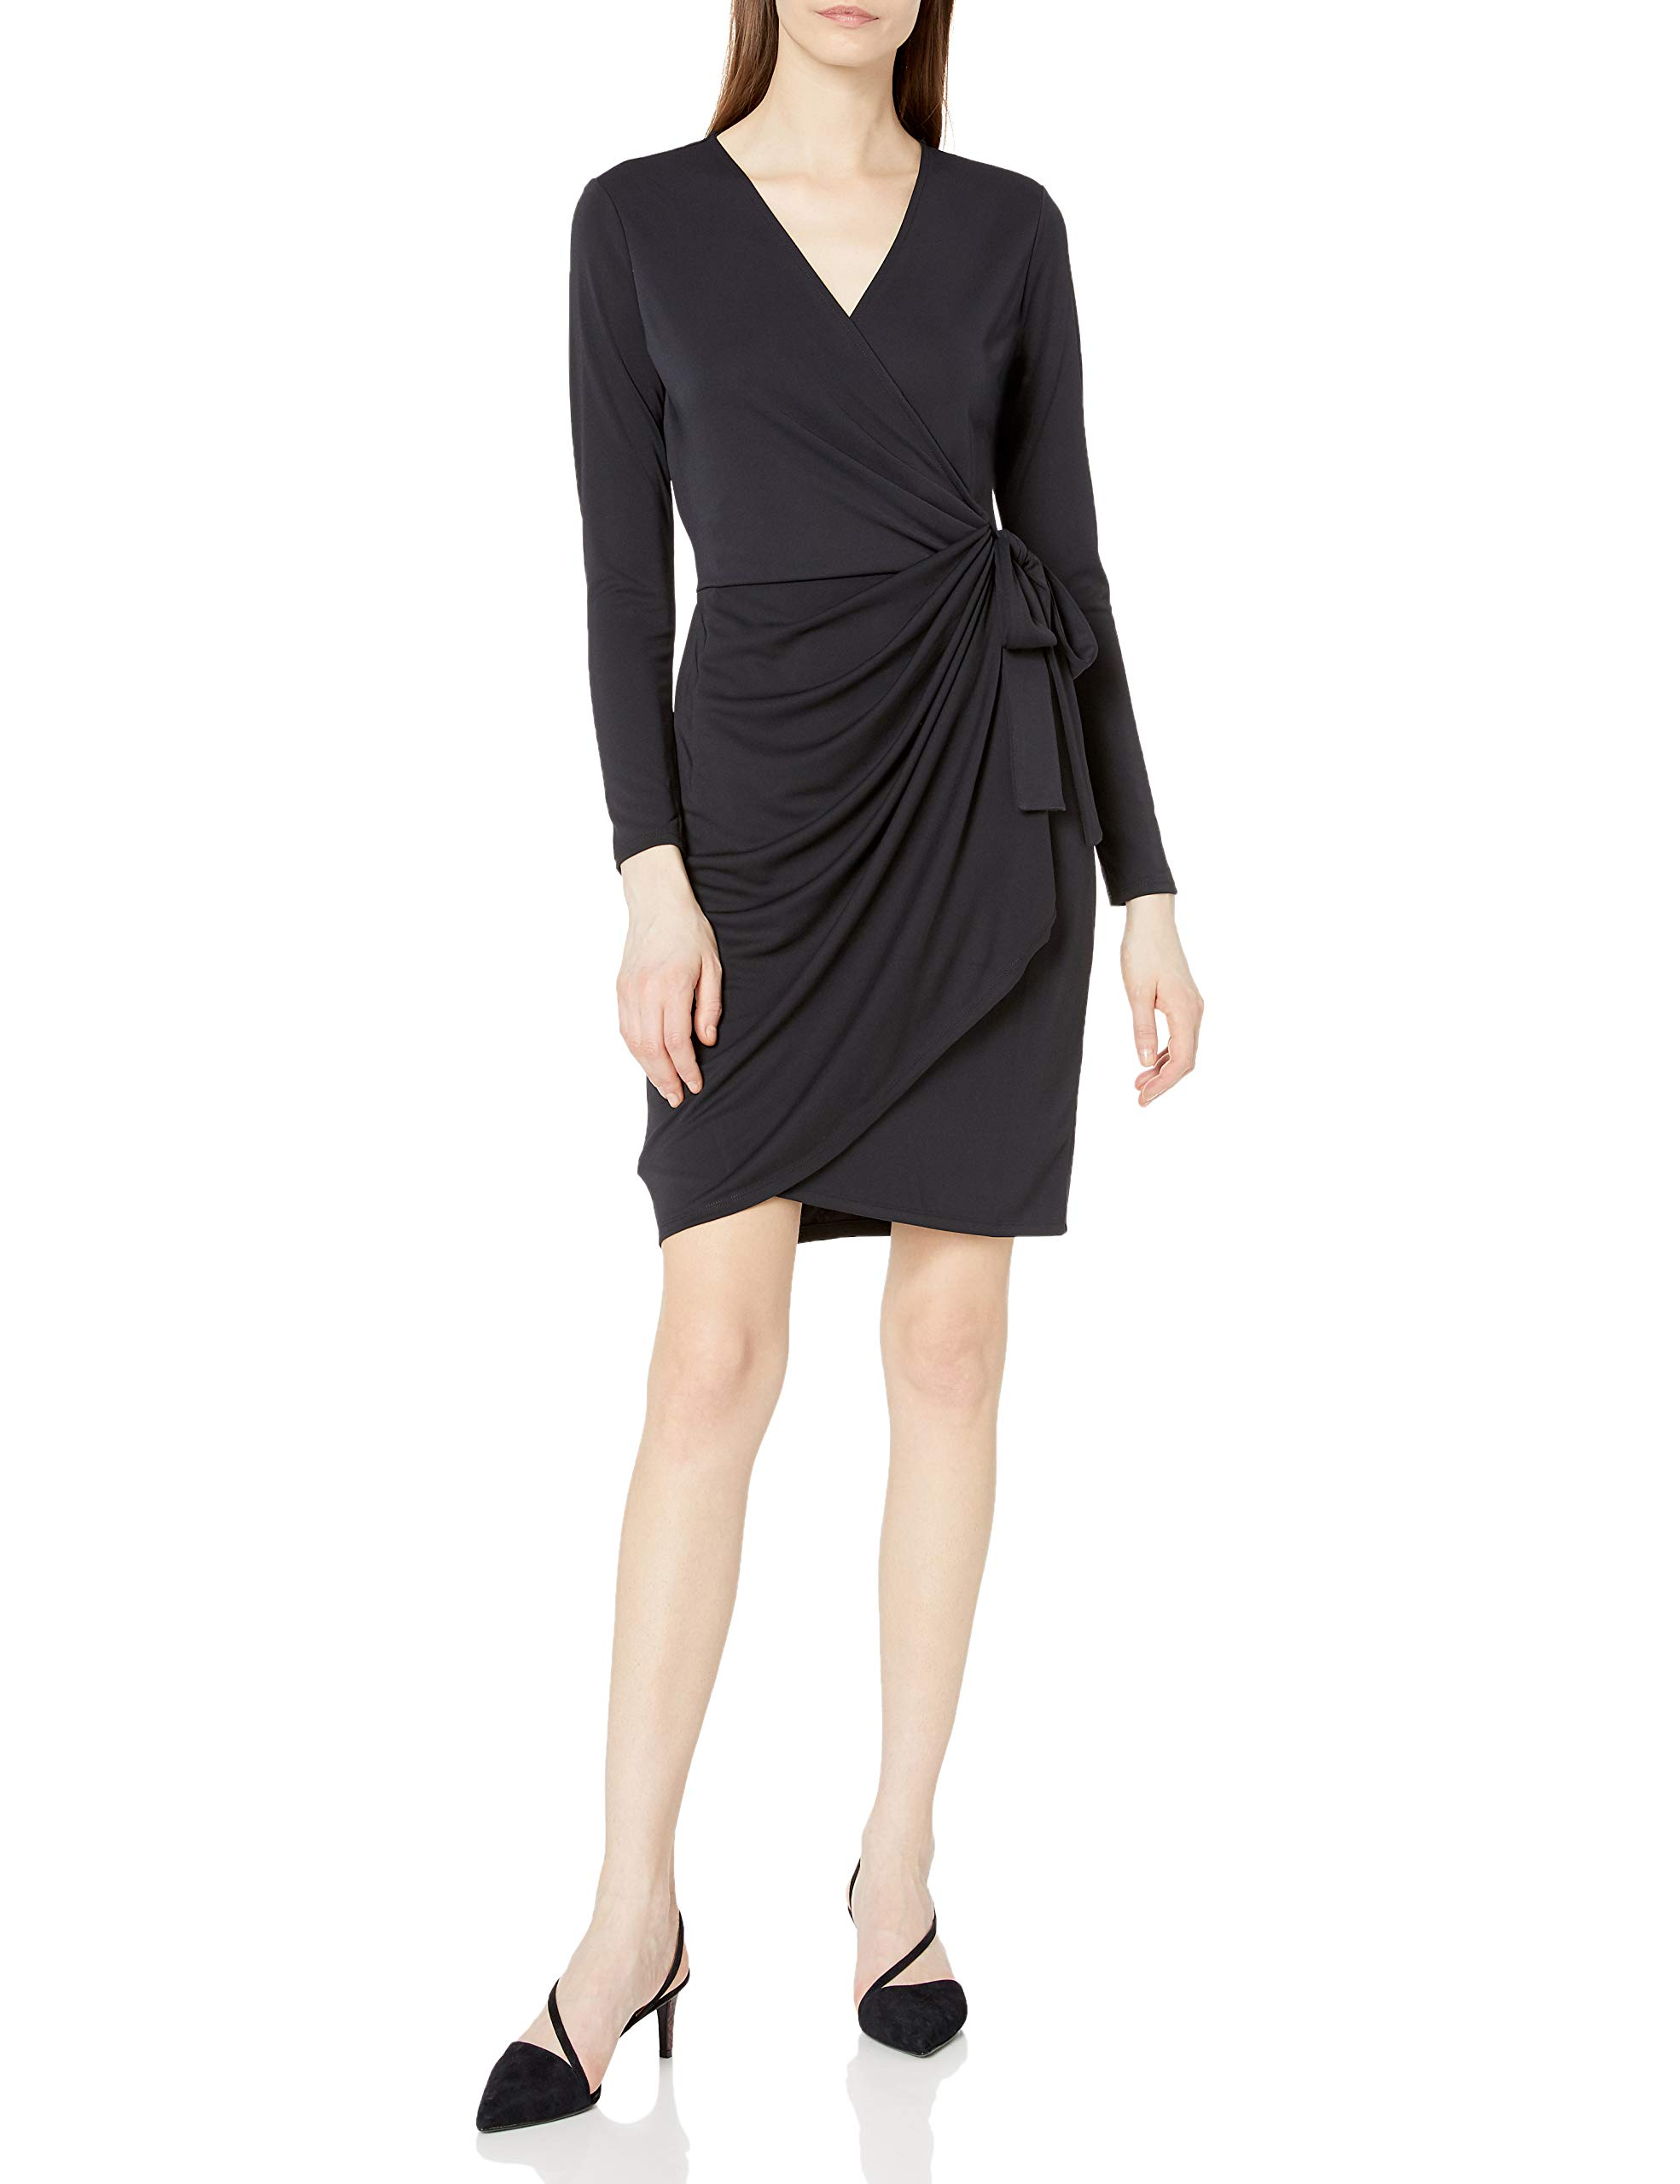 Amazon Brand - Lark & Ro Women's Classic Long Sleeve V-Neck Compact Matte Jersey Wrap Dress